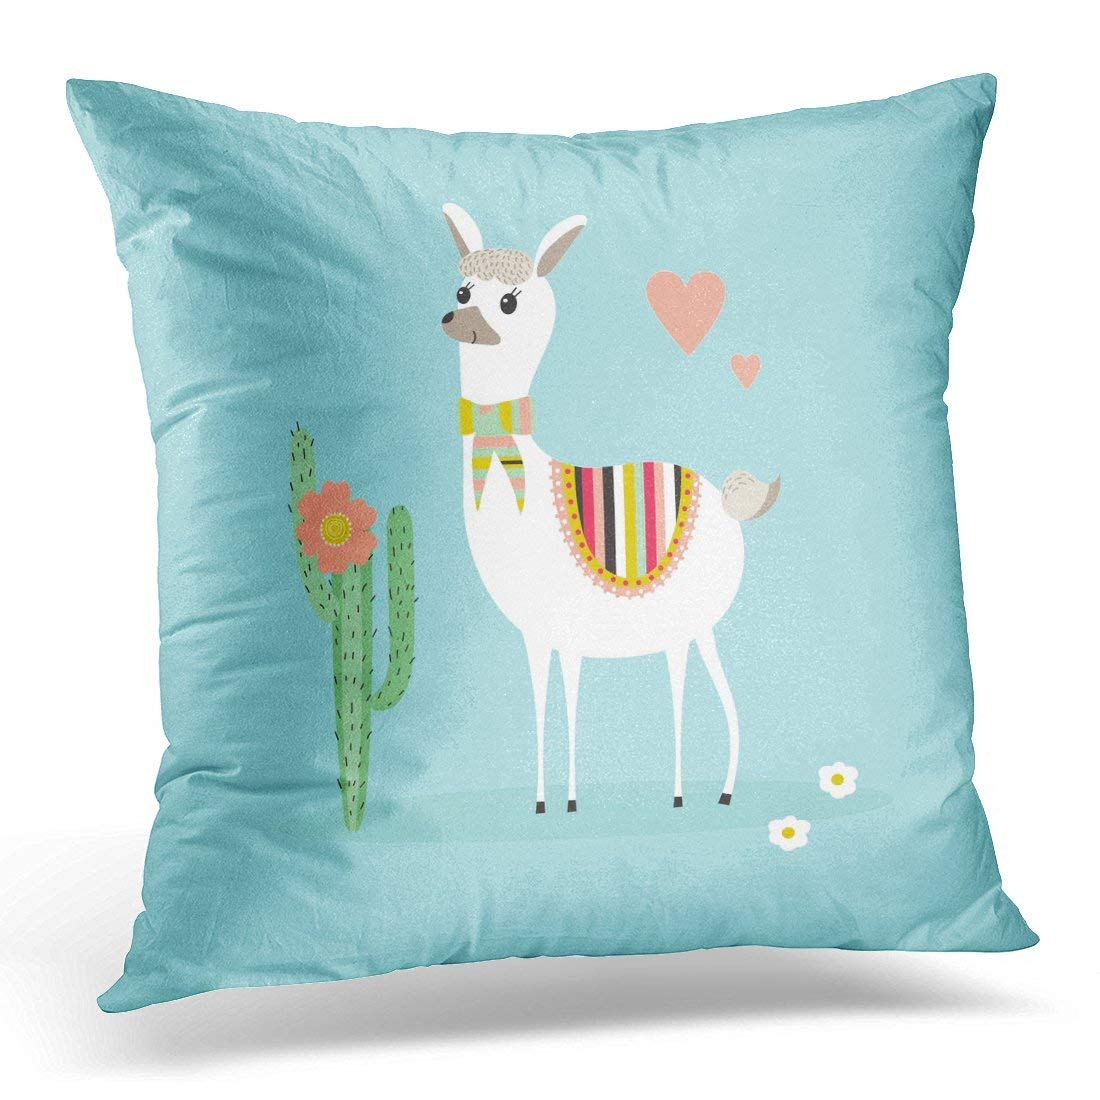 USART Alpaca Llama Cute Lama and Cactus on Blue Kids in Mexican America Pillow Case Cushion Cover 18x18 Inches